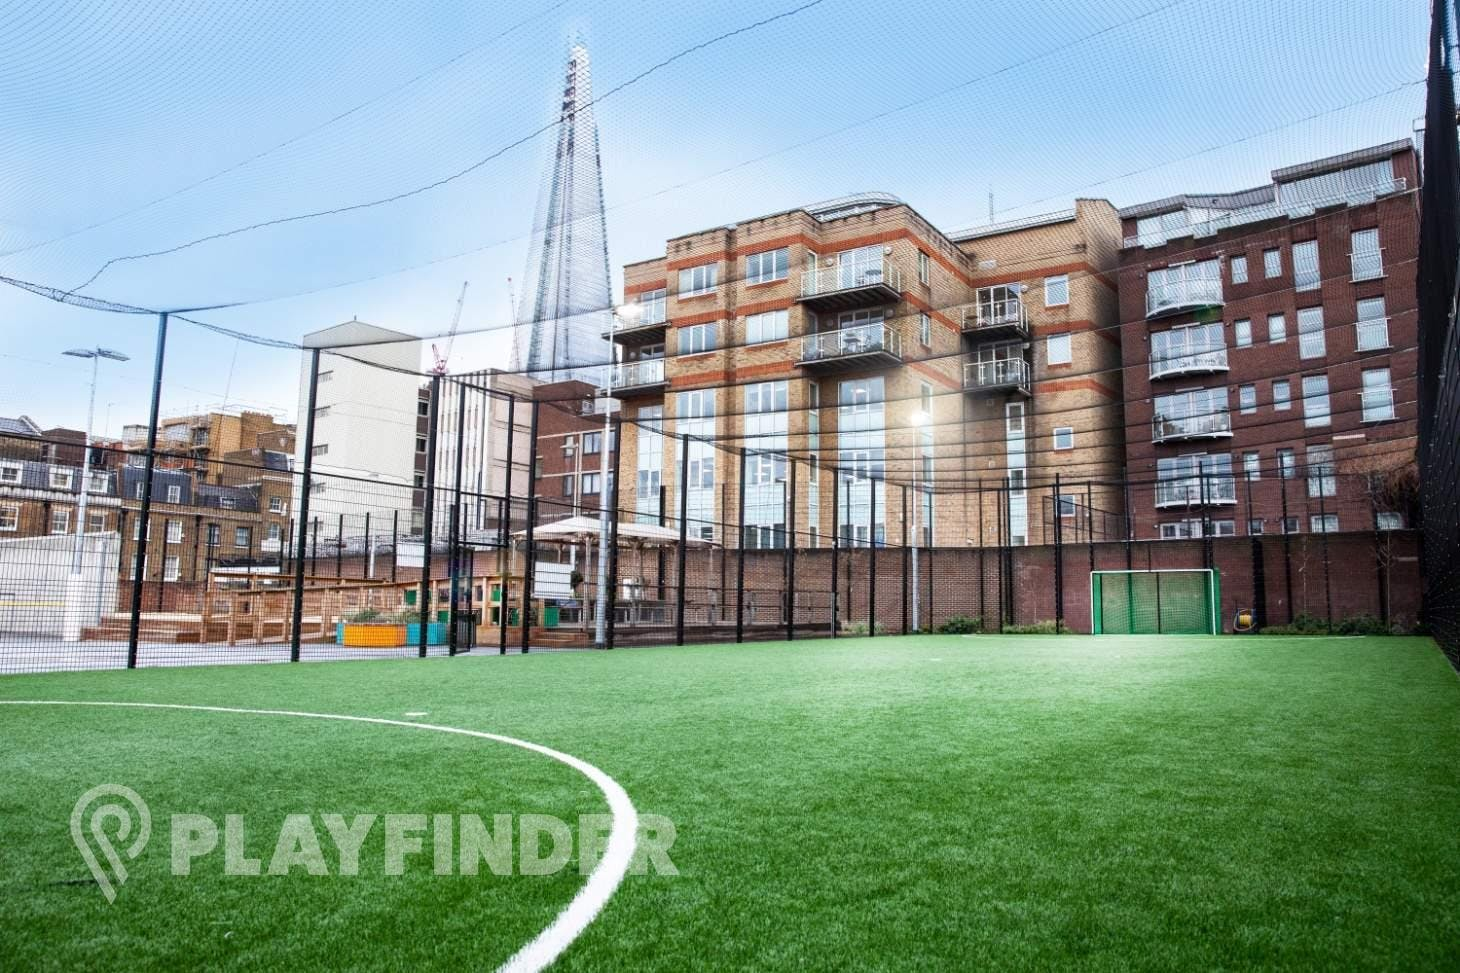 Marlborough Sports Garden, London Bridge - 5aside.org 5 a side | 3G Astroturf football pitch